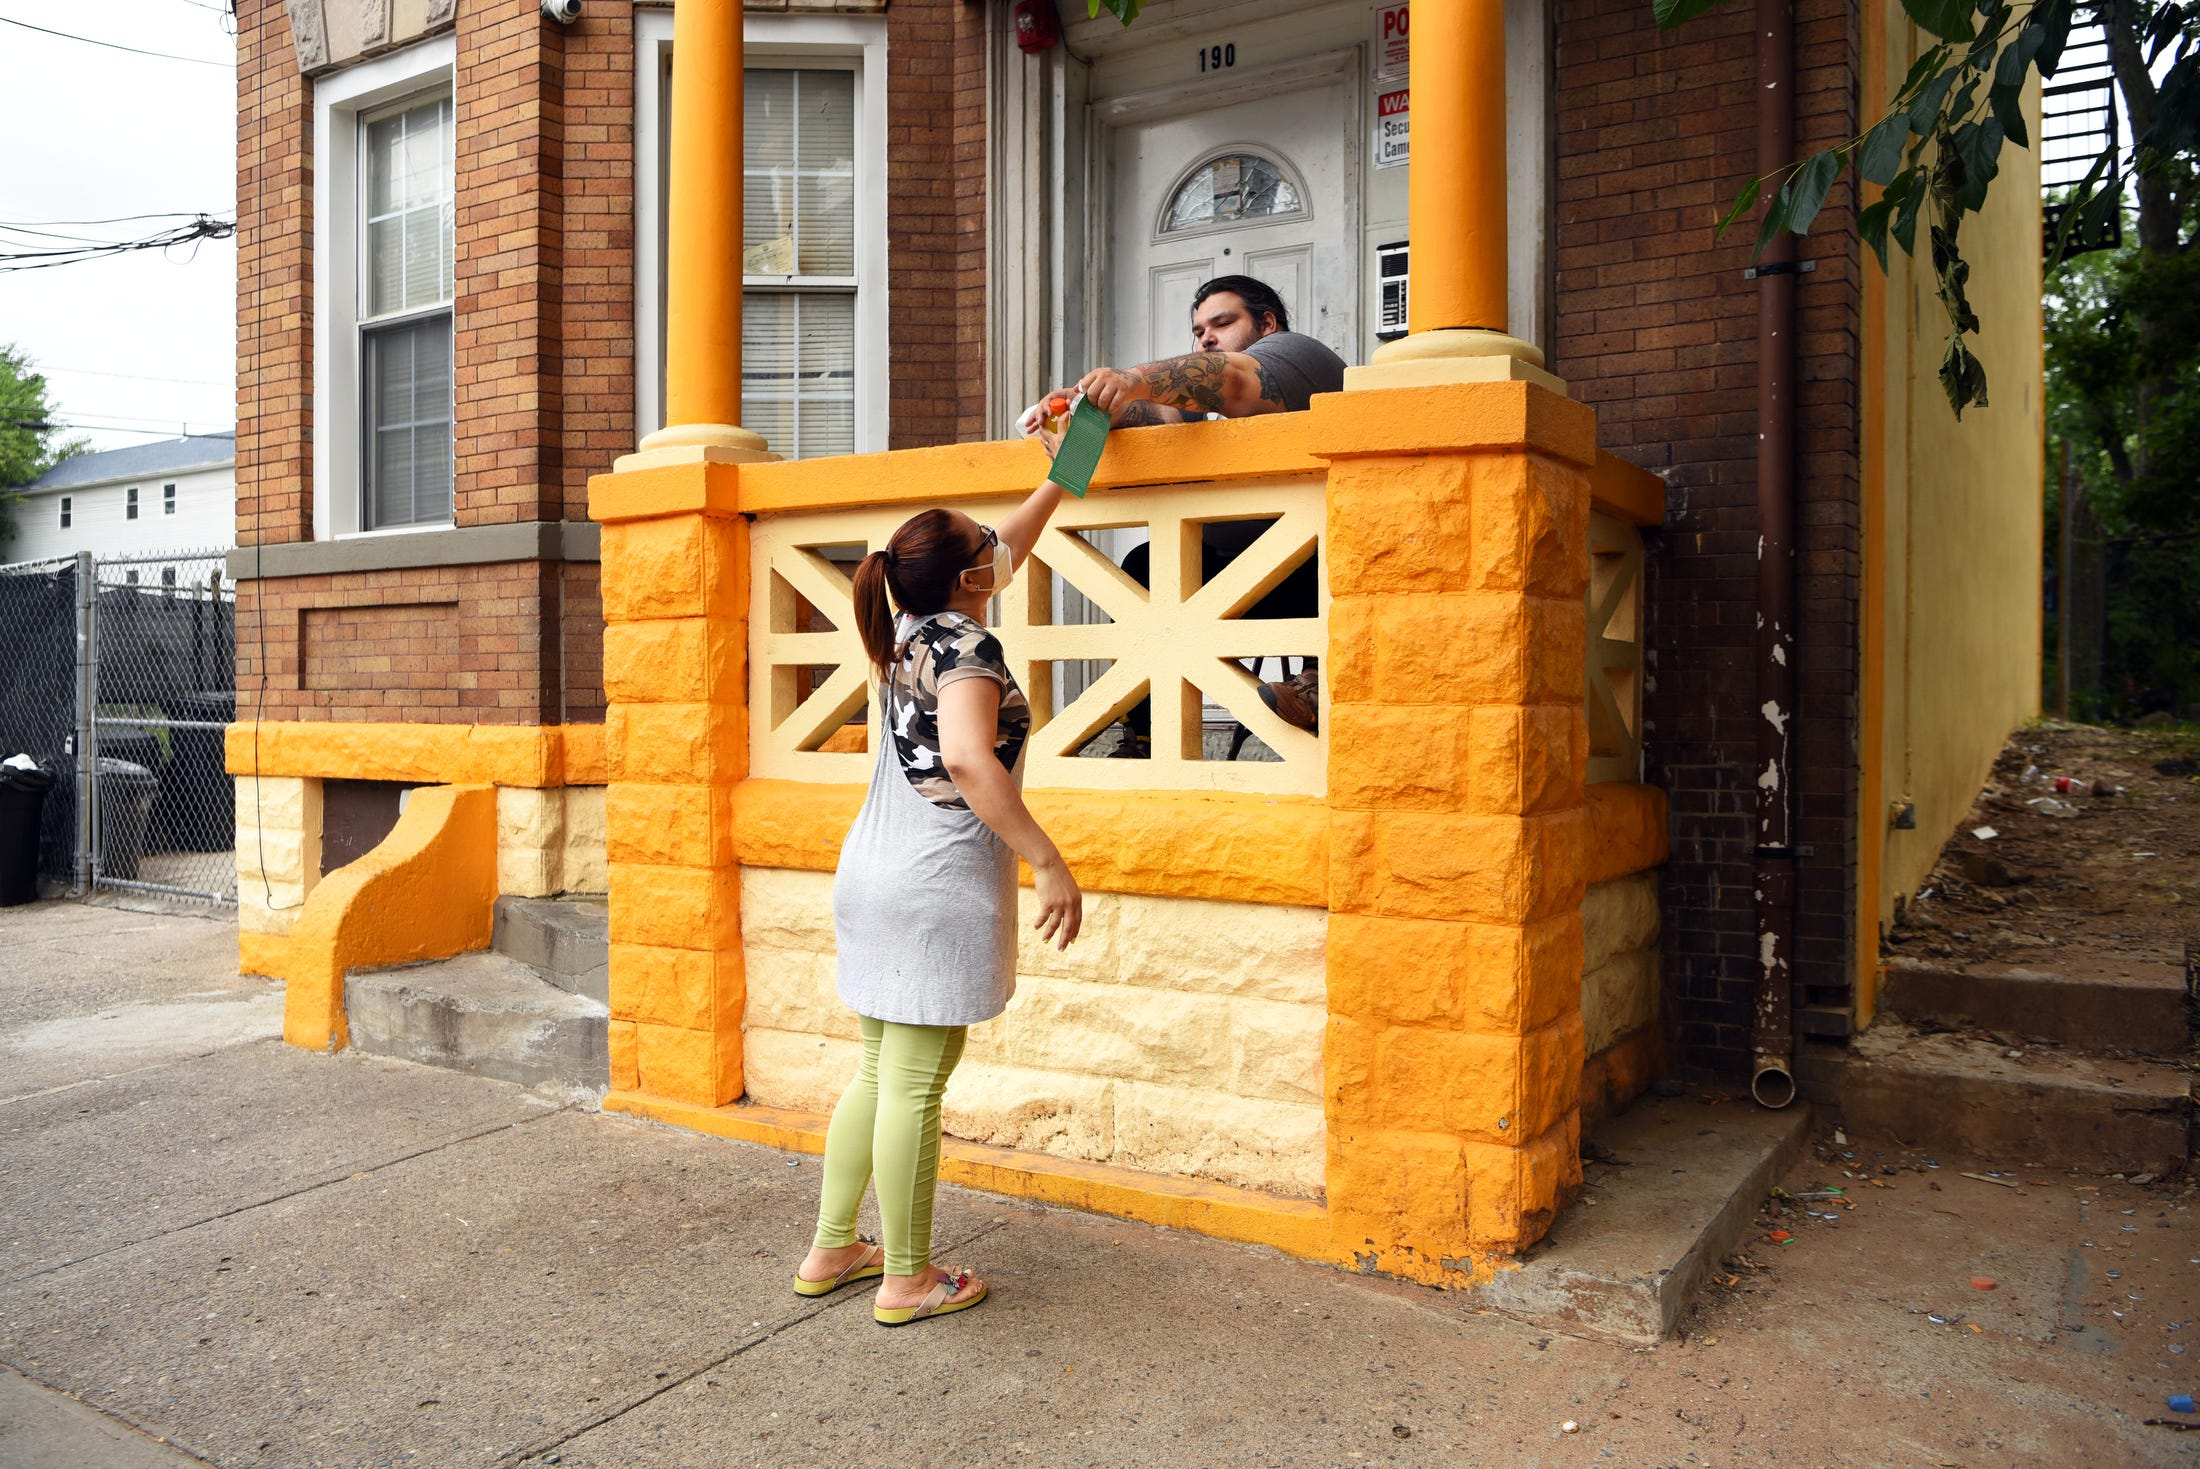 Elias Arroyo, 32, accepts a meal from his neighbor, Jennifer Perez, while sitting outside of his Hamilton Avenue apartment in Paterson on Aug. 28, 2021. Arroyo moved to the neighborhood a year ago from Washington Heights in upper Manhattan, and says things have quieted down since Perez, Peralta and the other families living in the Hamilton 7, a group of Habitat for Humanity homes on the street, have moved in.